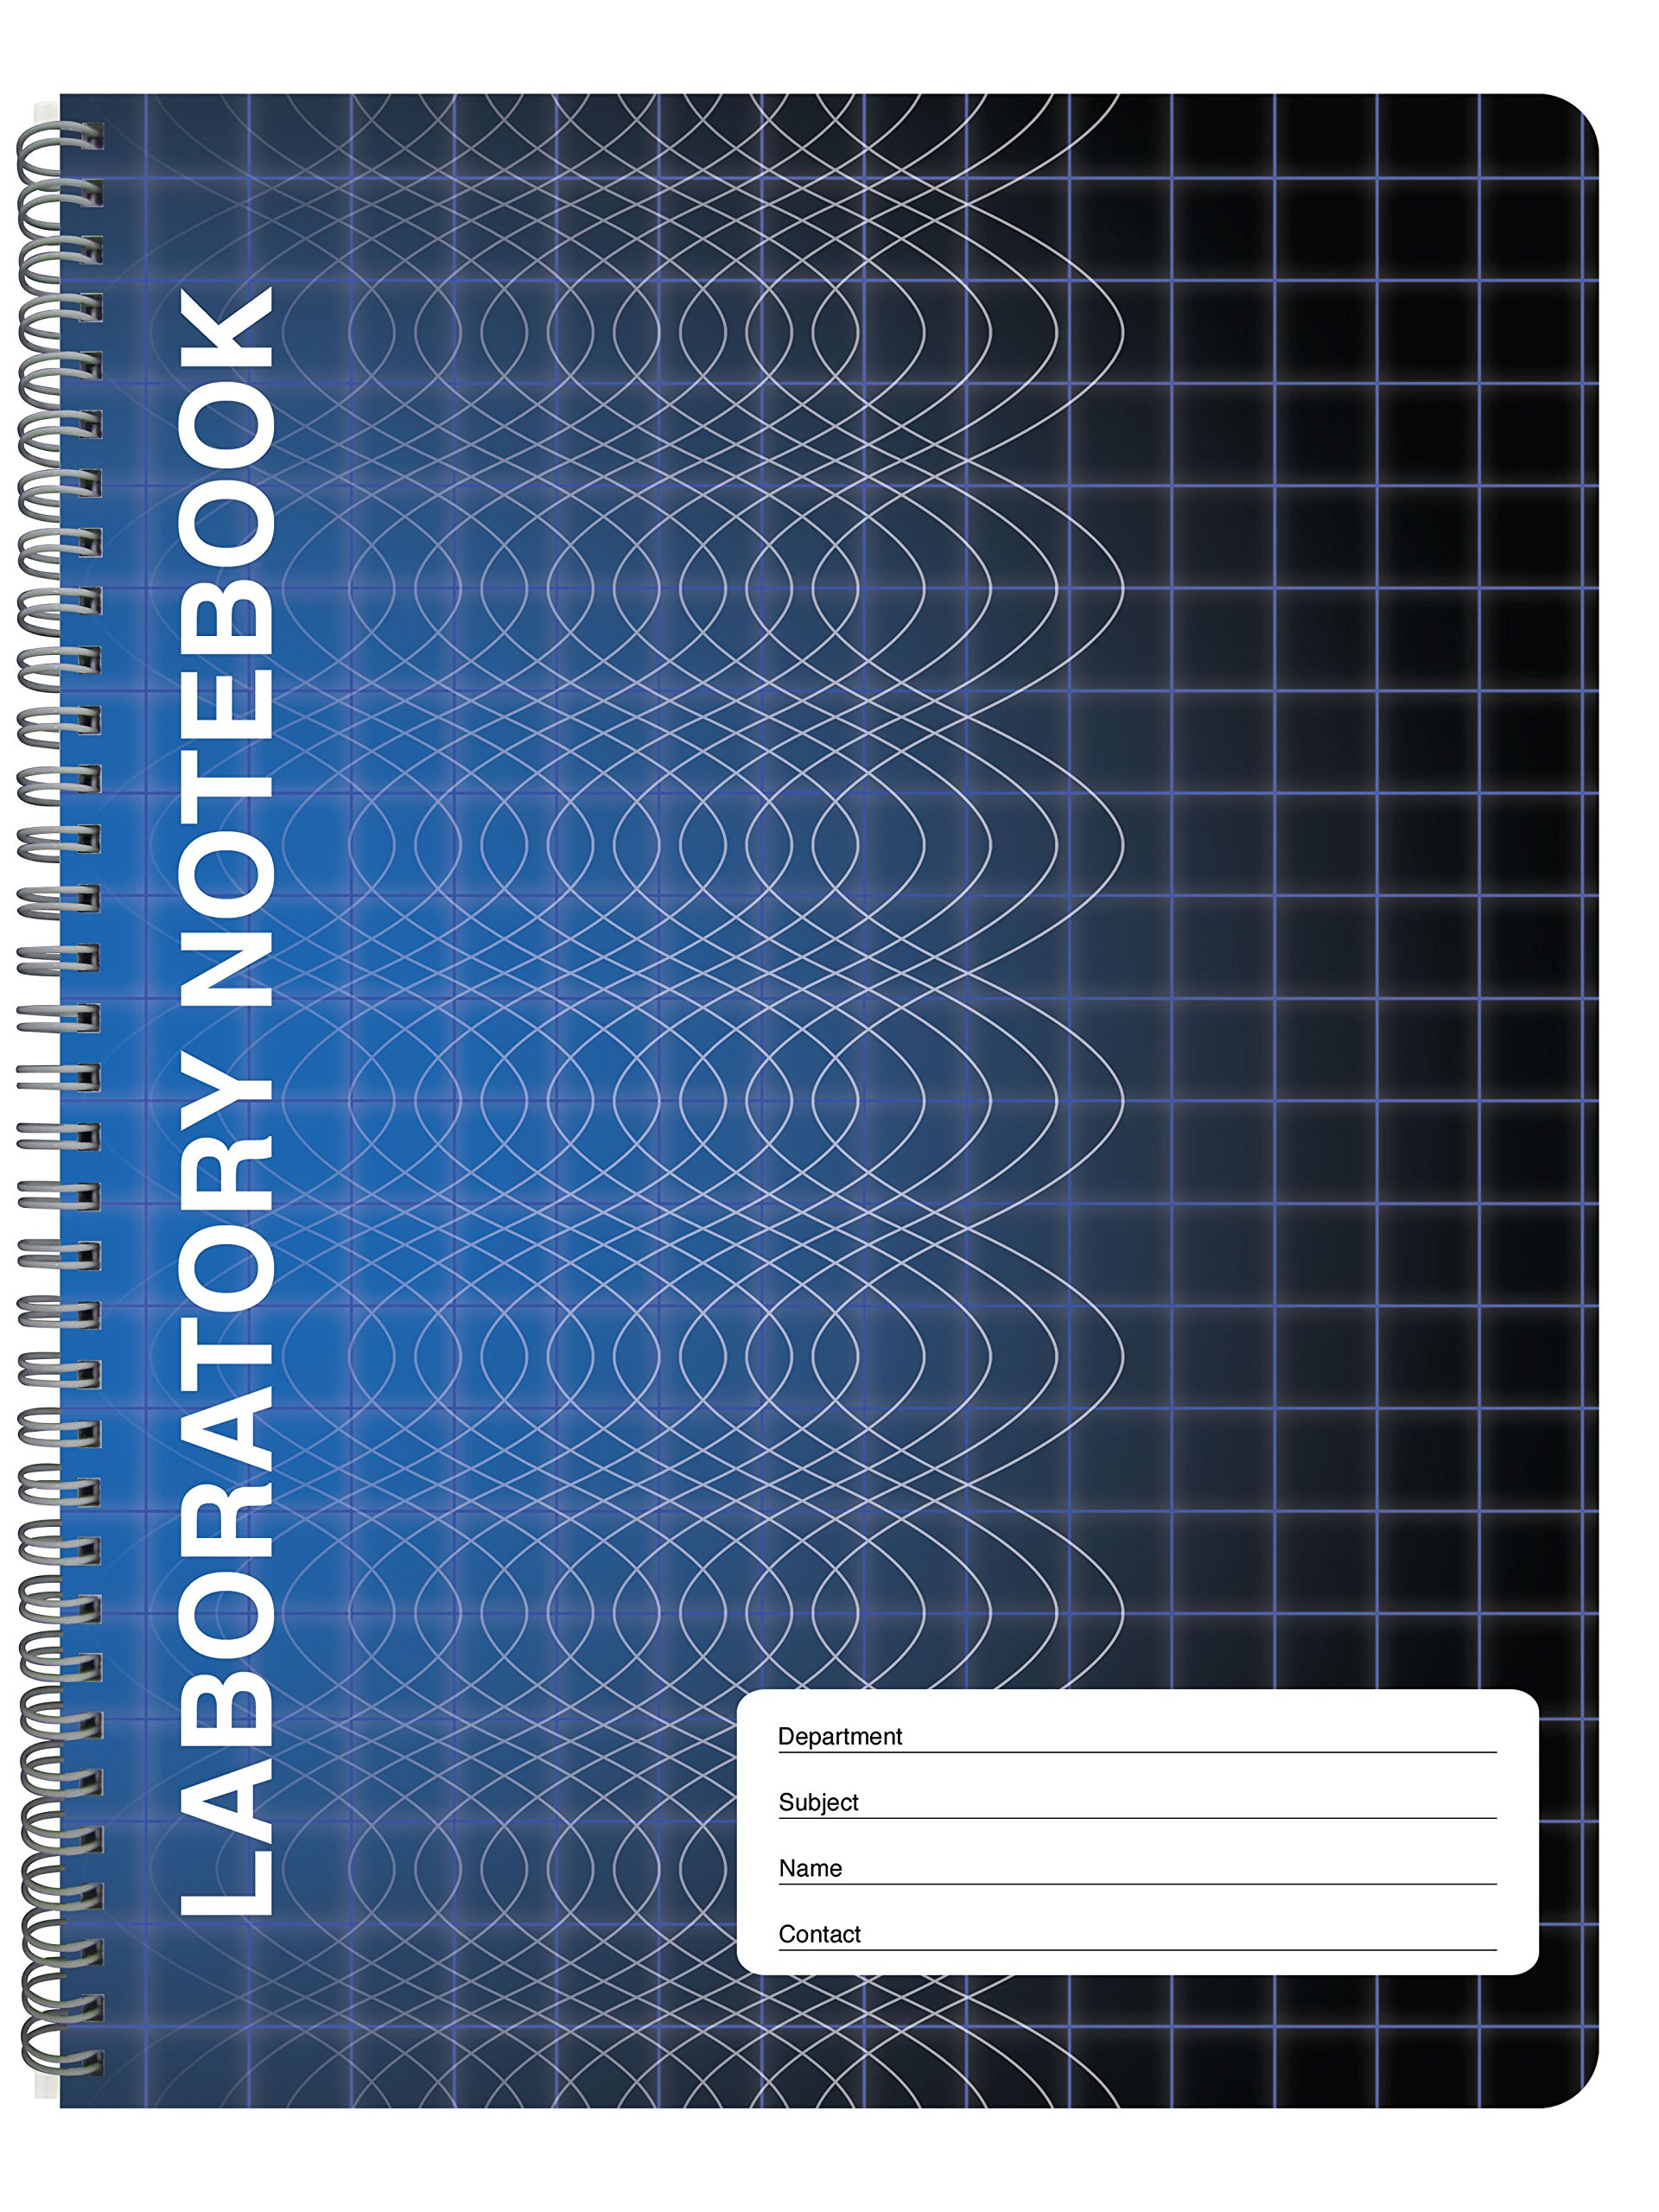 BookFactory Computation Lab Notebook - 100 Pages (9 1/4'' X 11 3/4'') - Scientific Grid Pages, Durable Translucent Cover, Wire-O Binding (COMP-100-CWG-A-(Lab)) by BookFactory